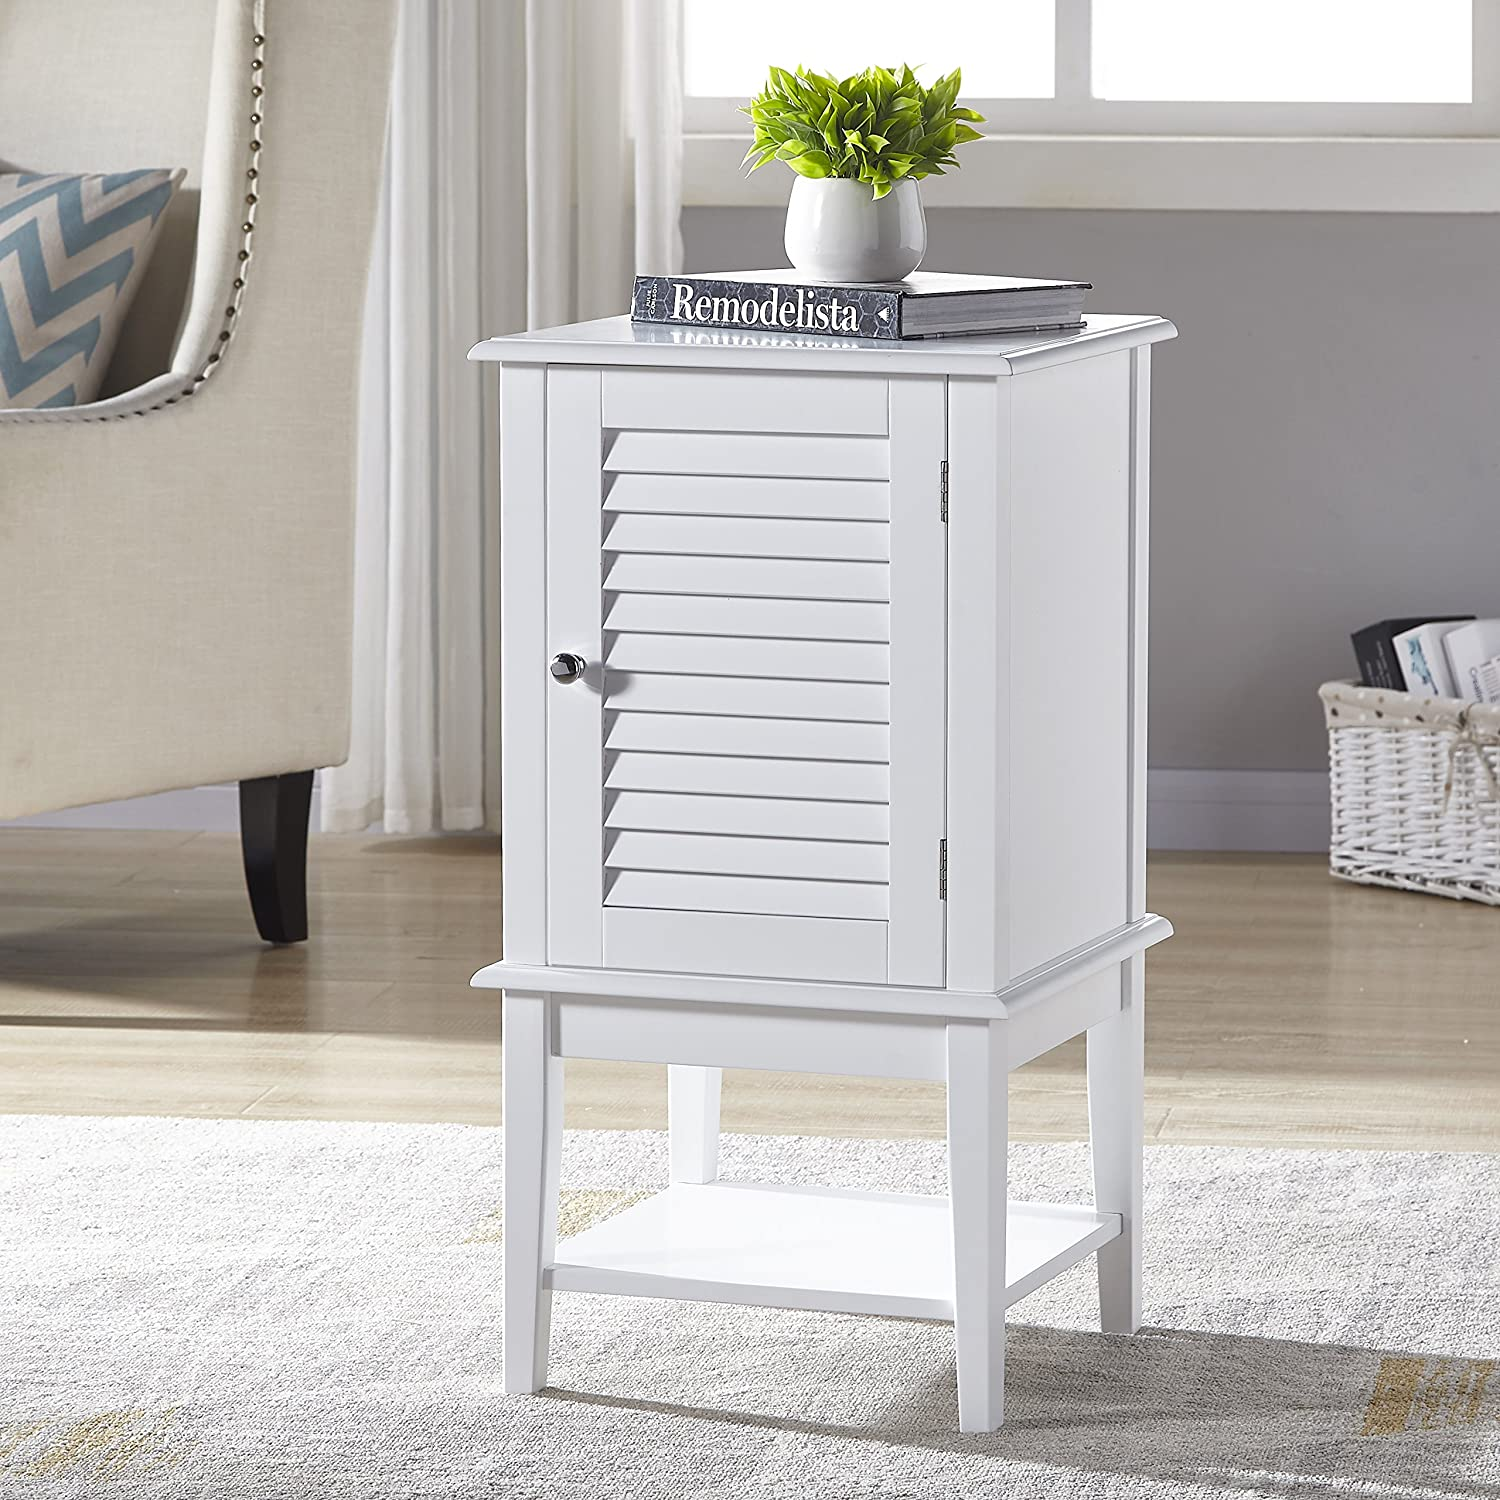 White Finish Bathroom Cabinet Storage Floor Cabinet Free Standing with Shutter Door and Bottom Shelf eHomeProducts NT-20323